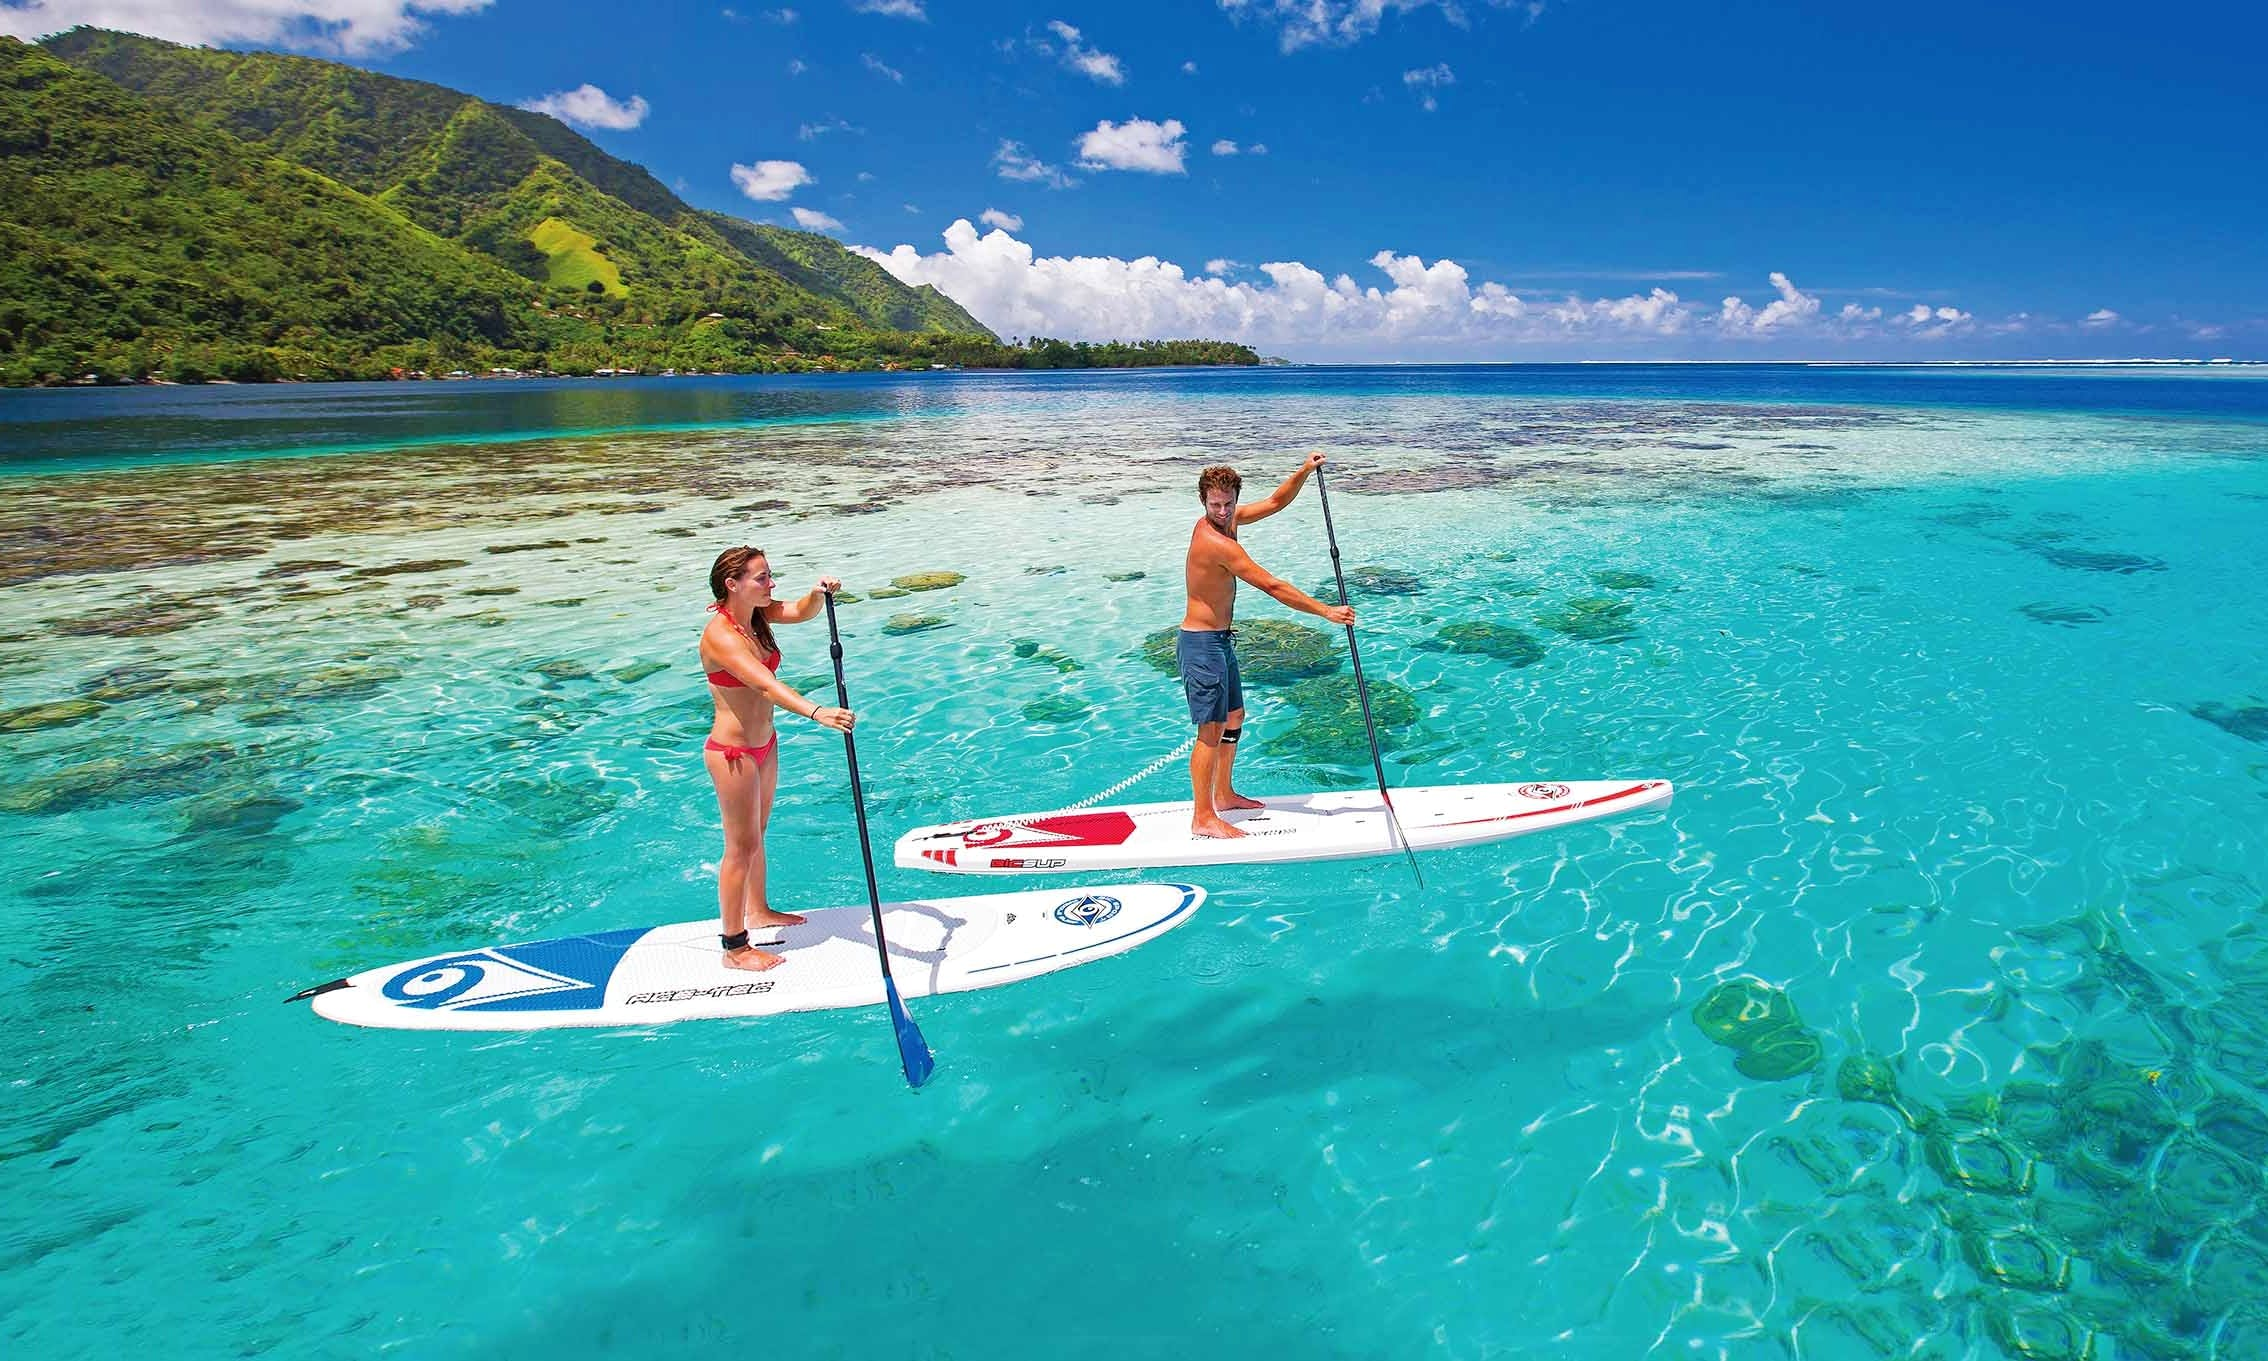 Stand Up Paddleboard Tours in Dania Beach